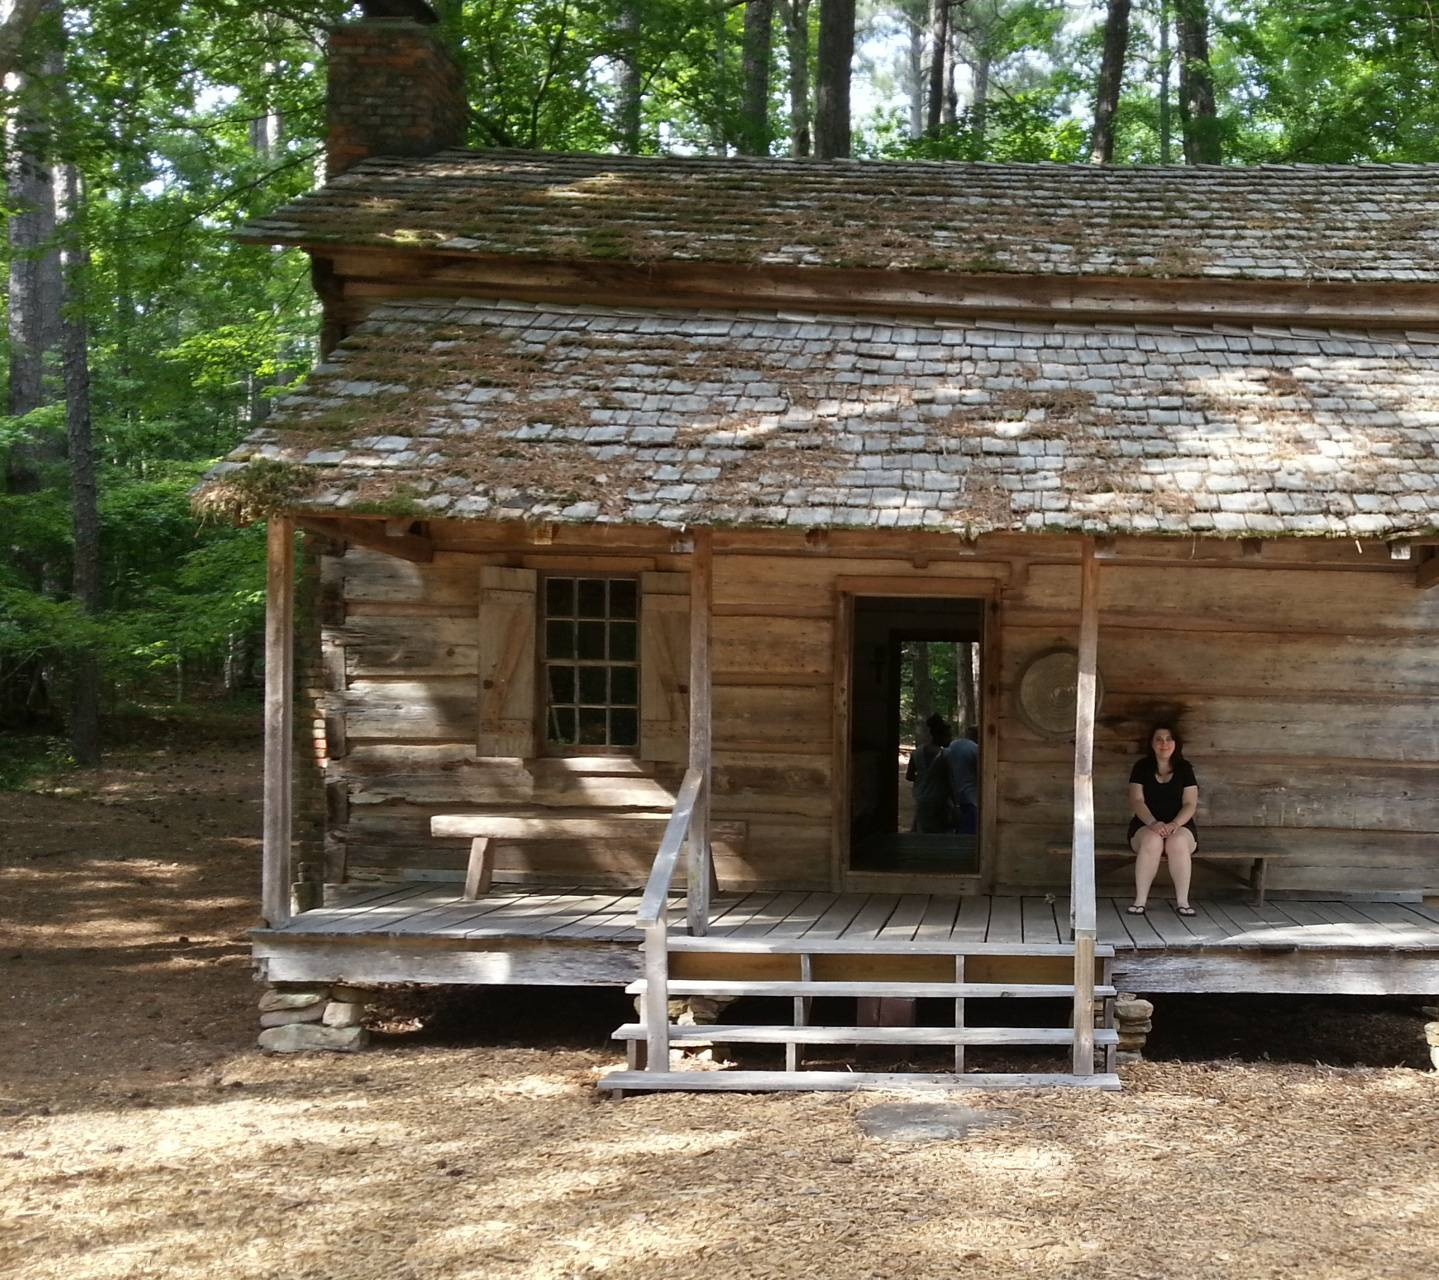 Log Cabin From 1800s